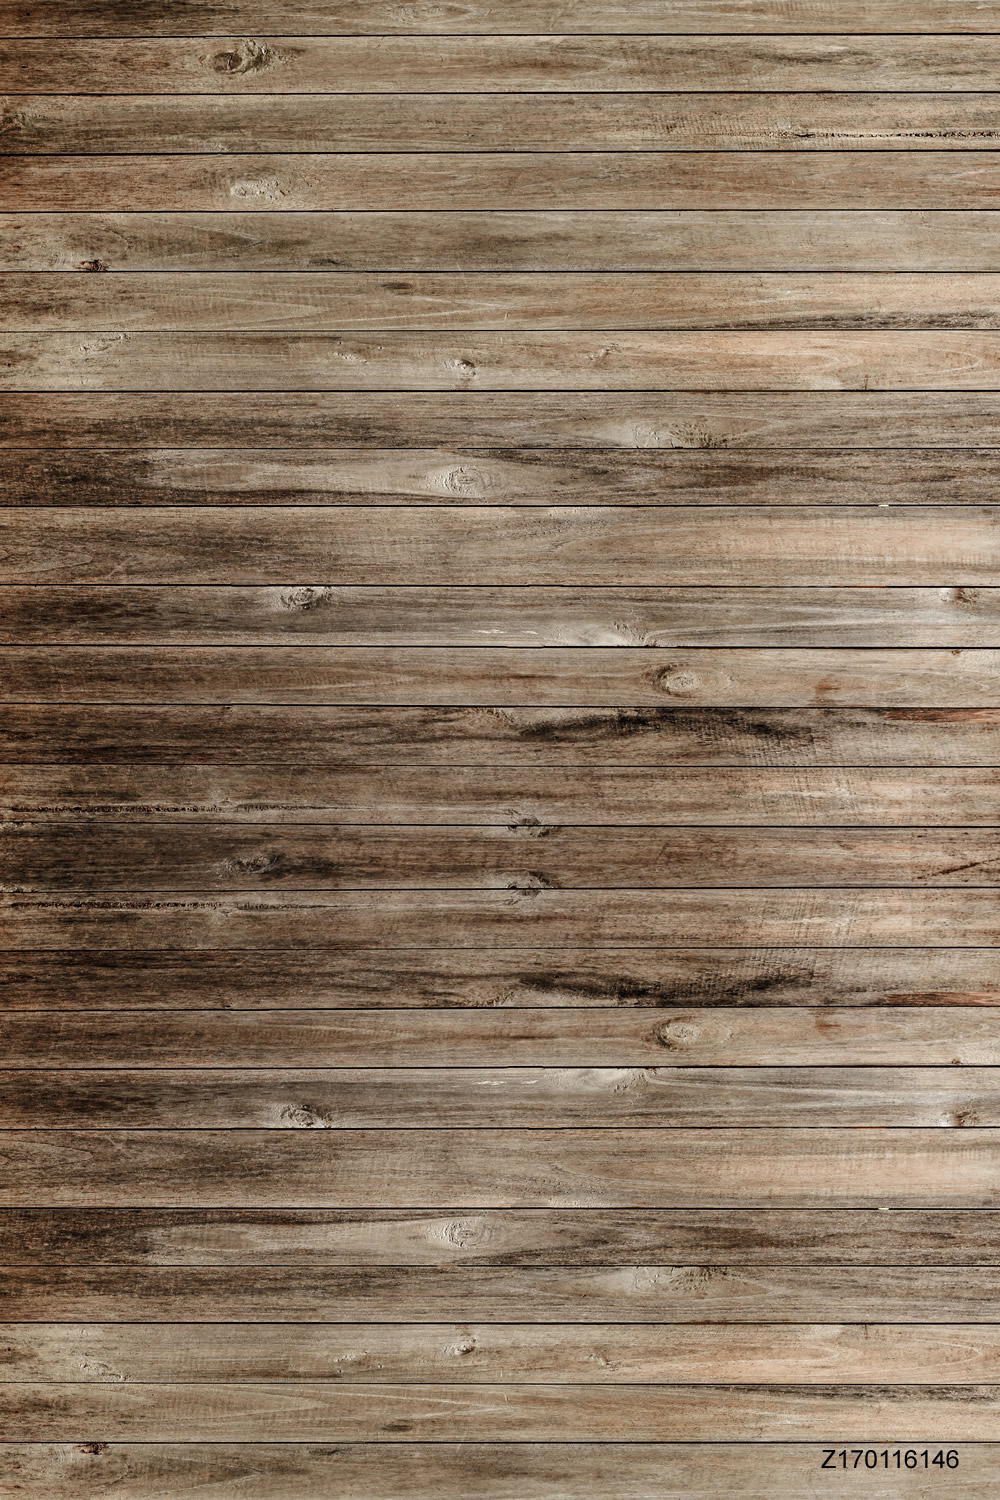 Fantasy Brown Wood Board Photography Backdrops Fond Studio Photo Camera Fotografica 2750 fantasy cotu